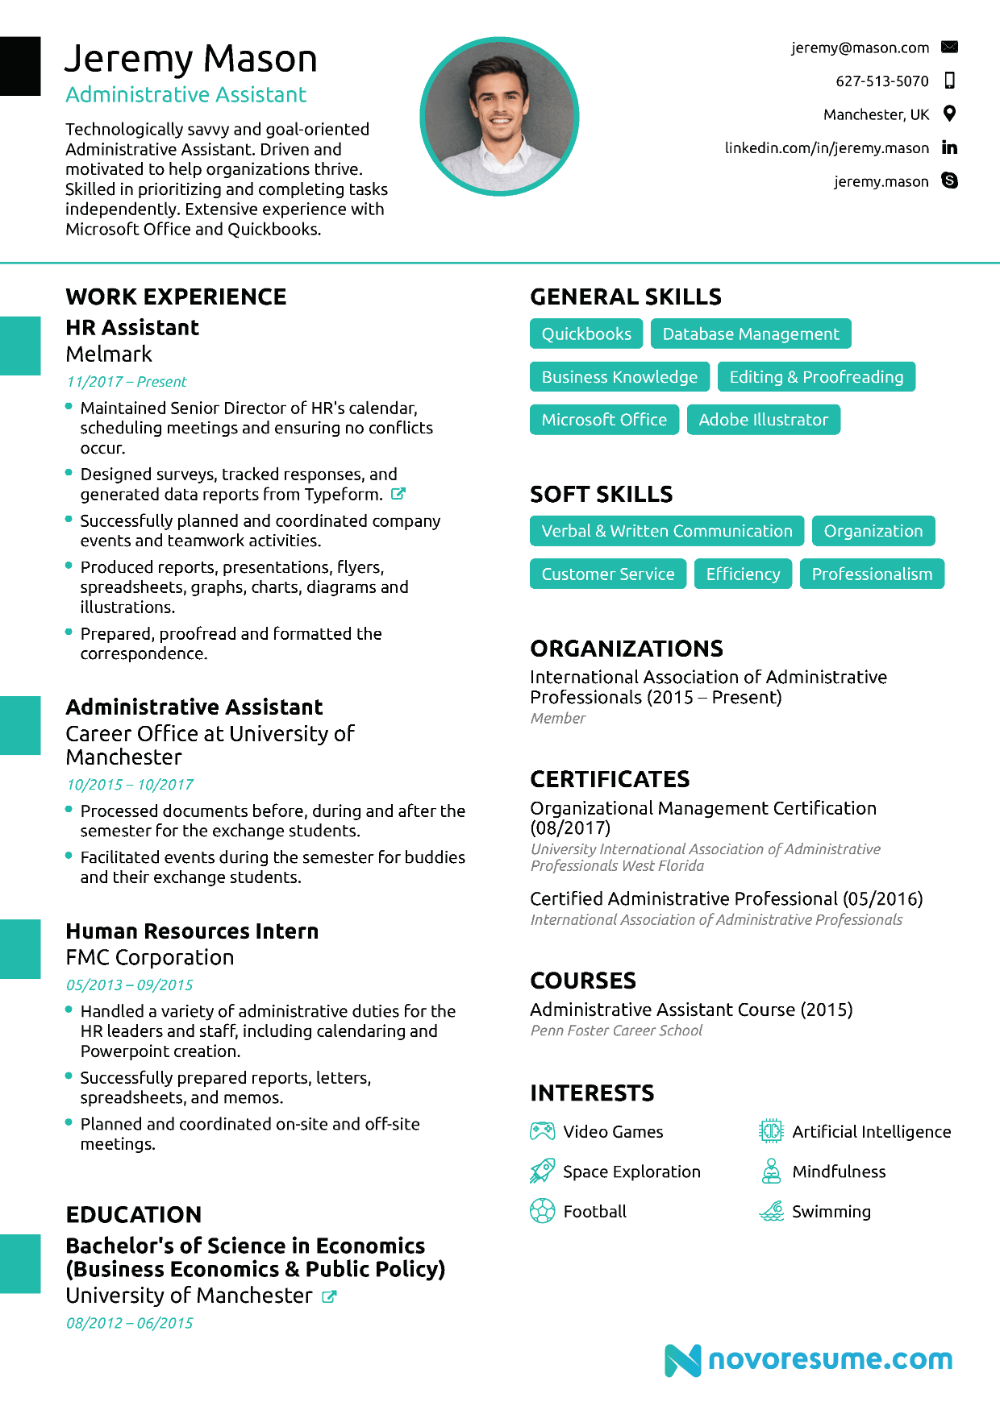 40 Hobbies Interests To Put On A Resume Updated For 2019 Administrative Assistant Resume Resume Updating Resume Skills List